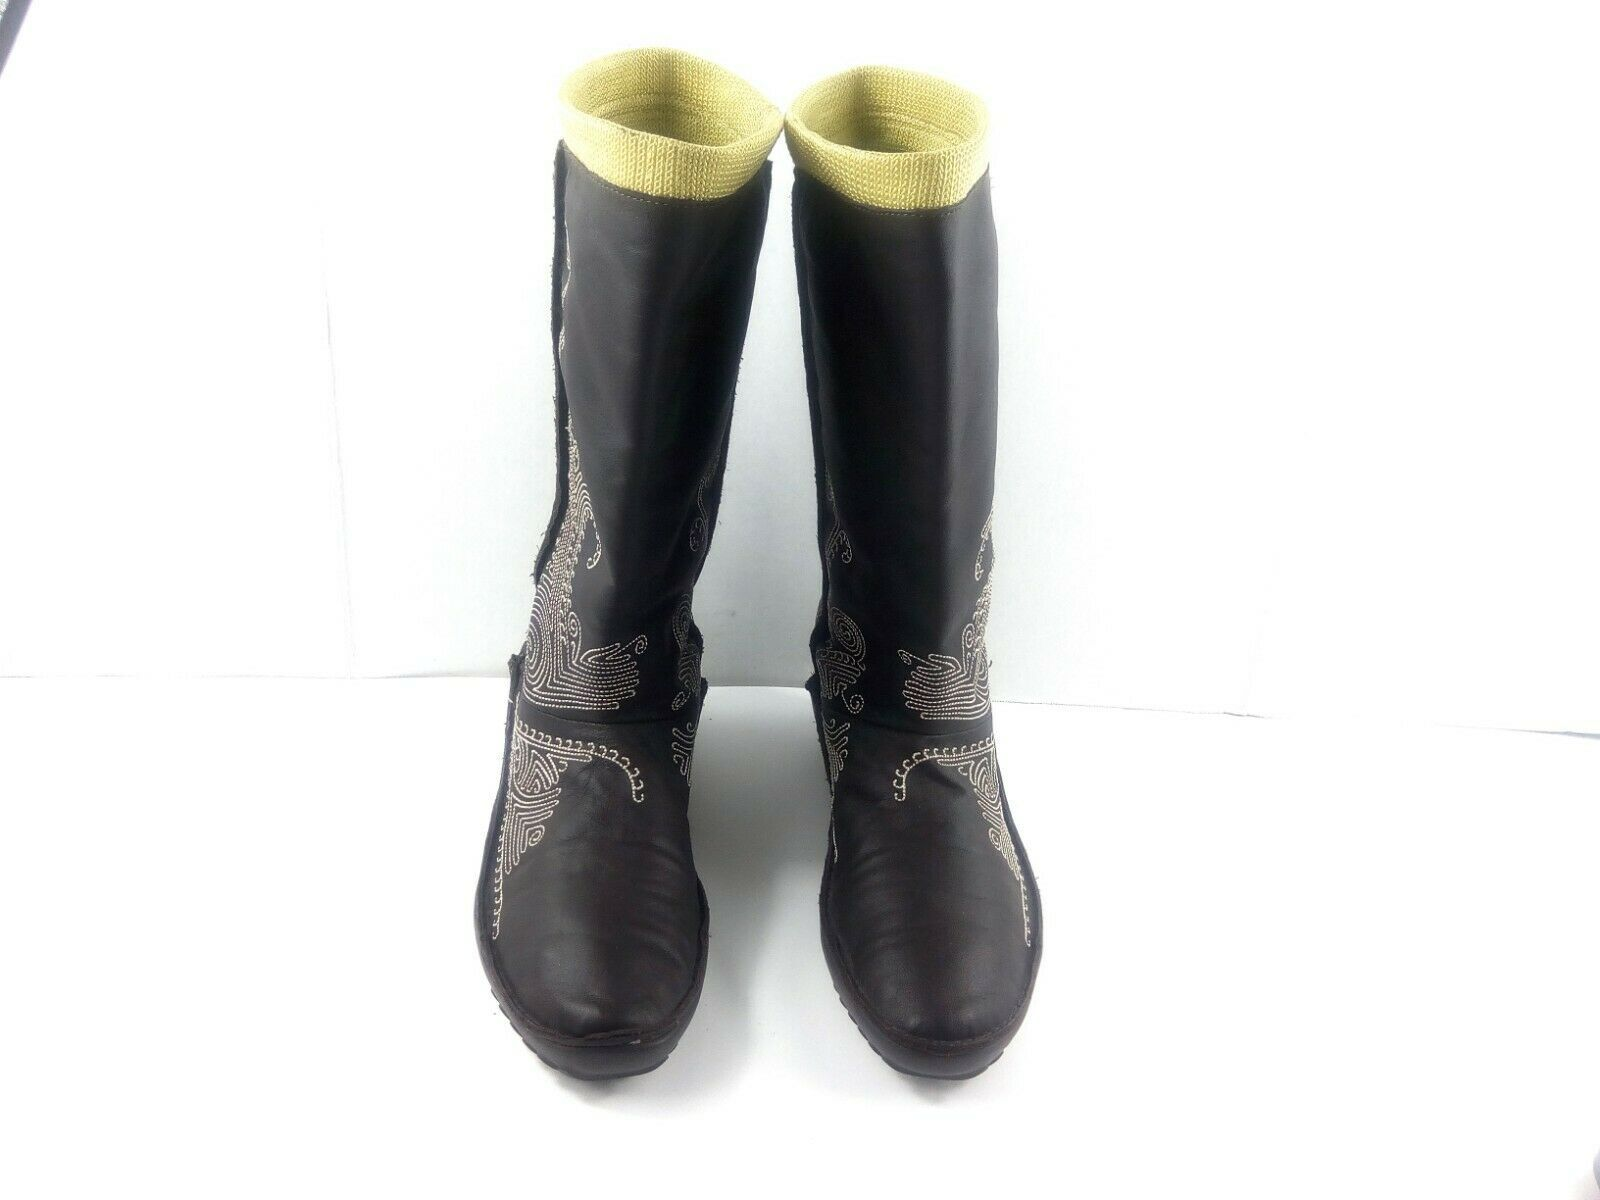 Puma Women's Boots Monsoon Tall Leather Embroidered Brown/Green Booties 7.5 W image 3